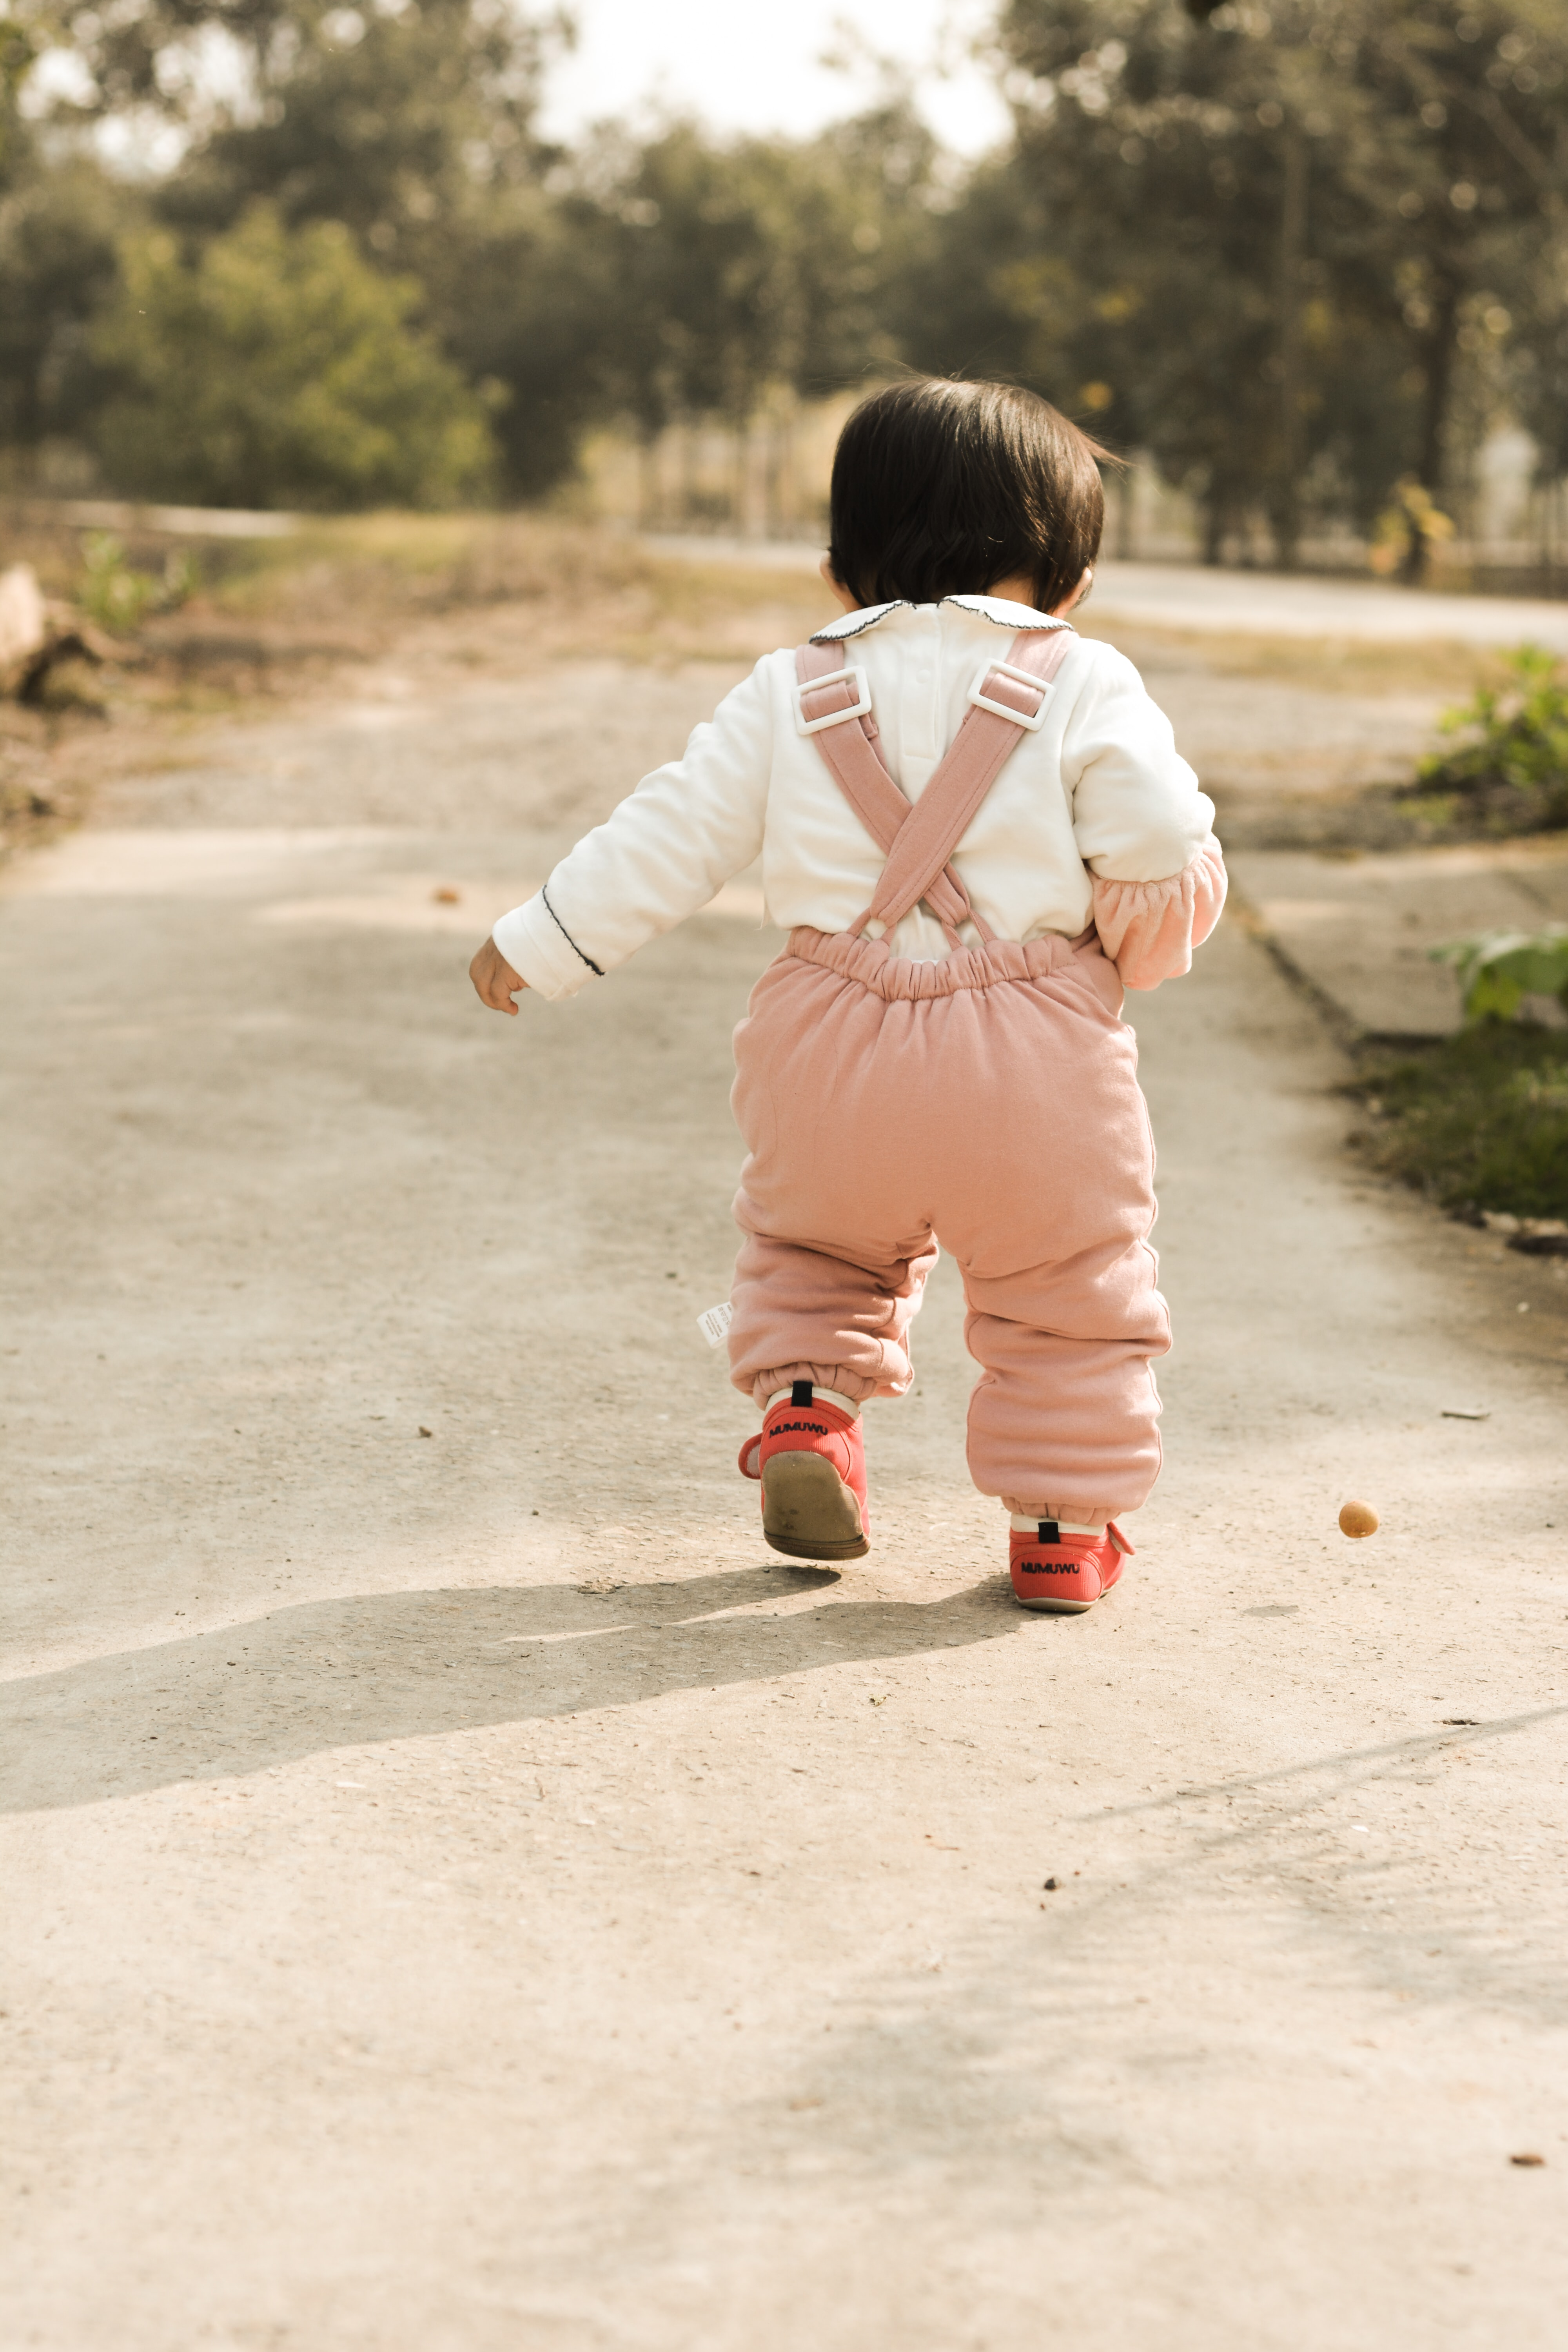 toddler walking on pathway during daytime